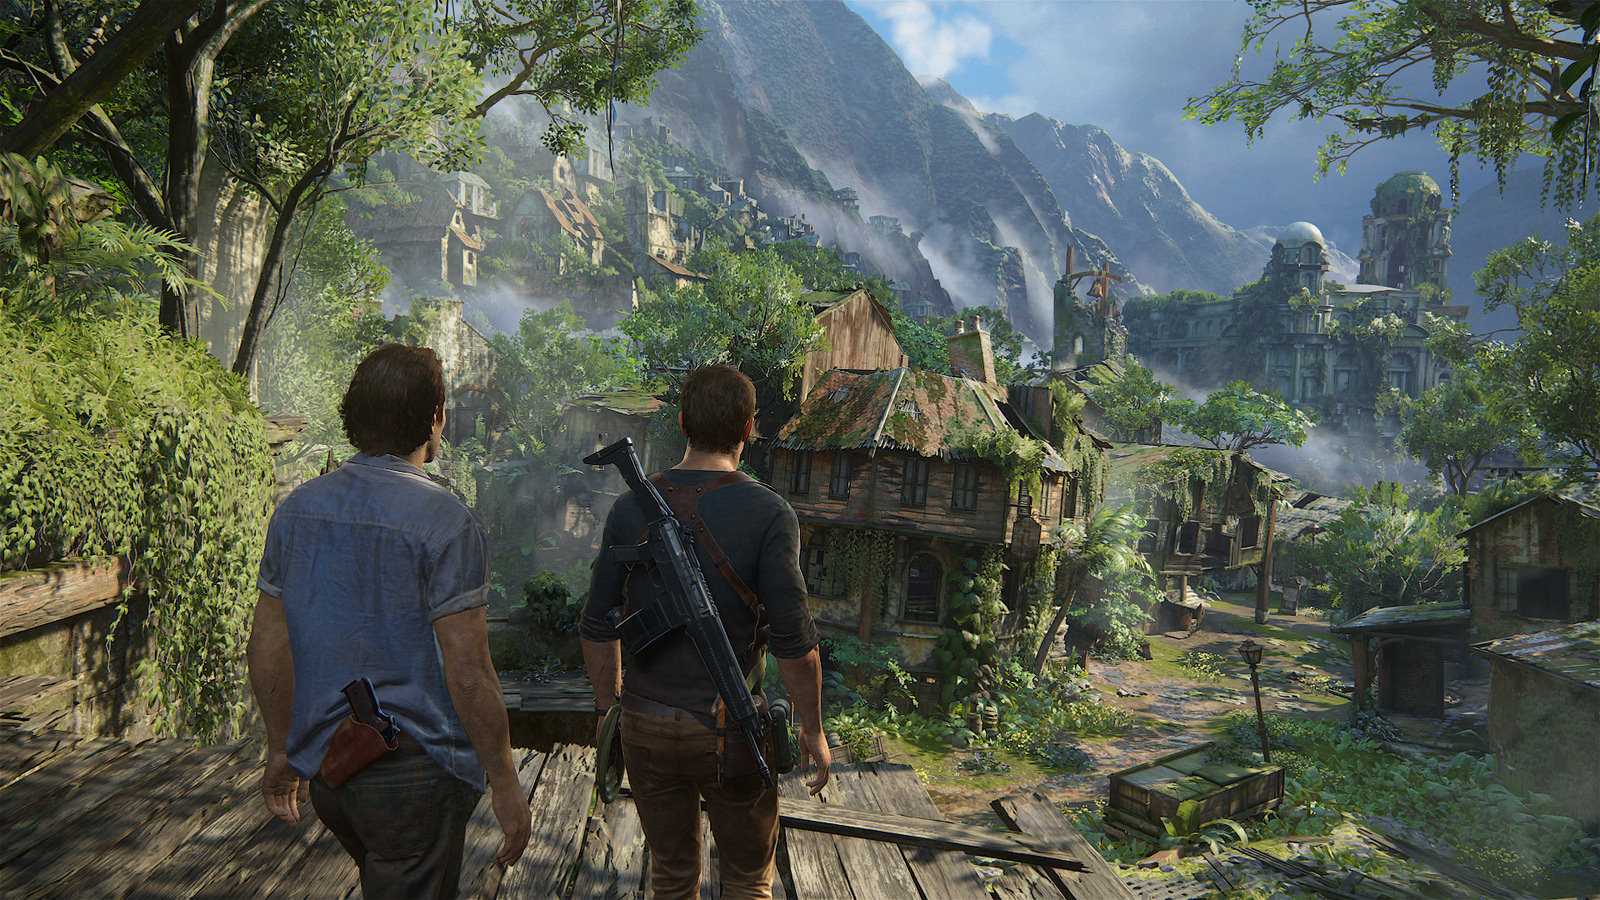 uncharted-4-nuove-immagini-04.jpg